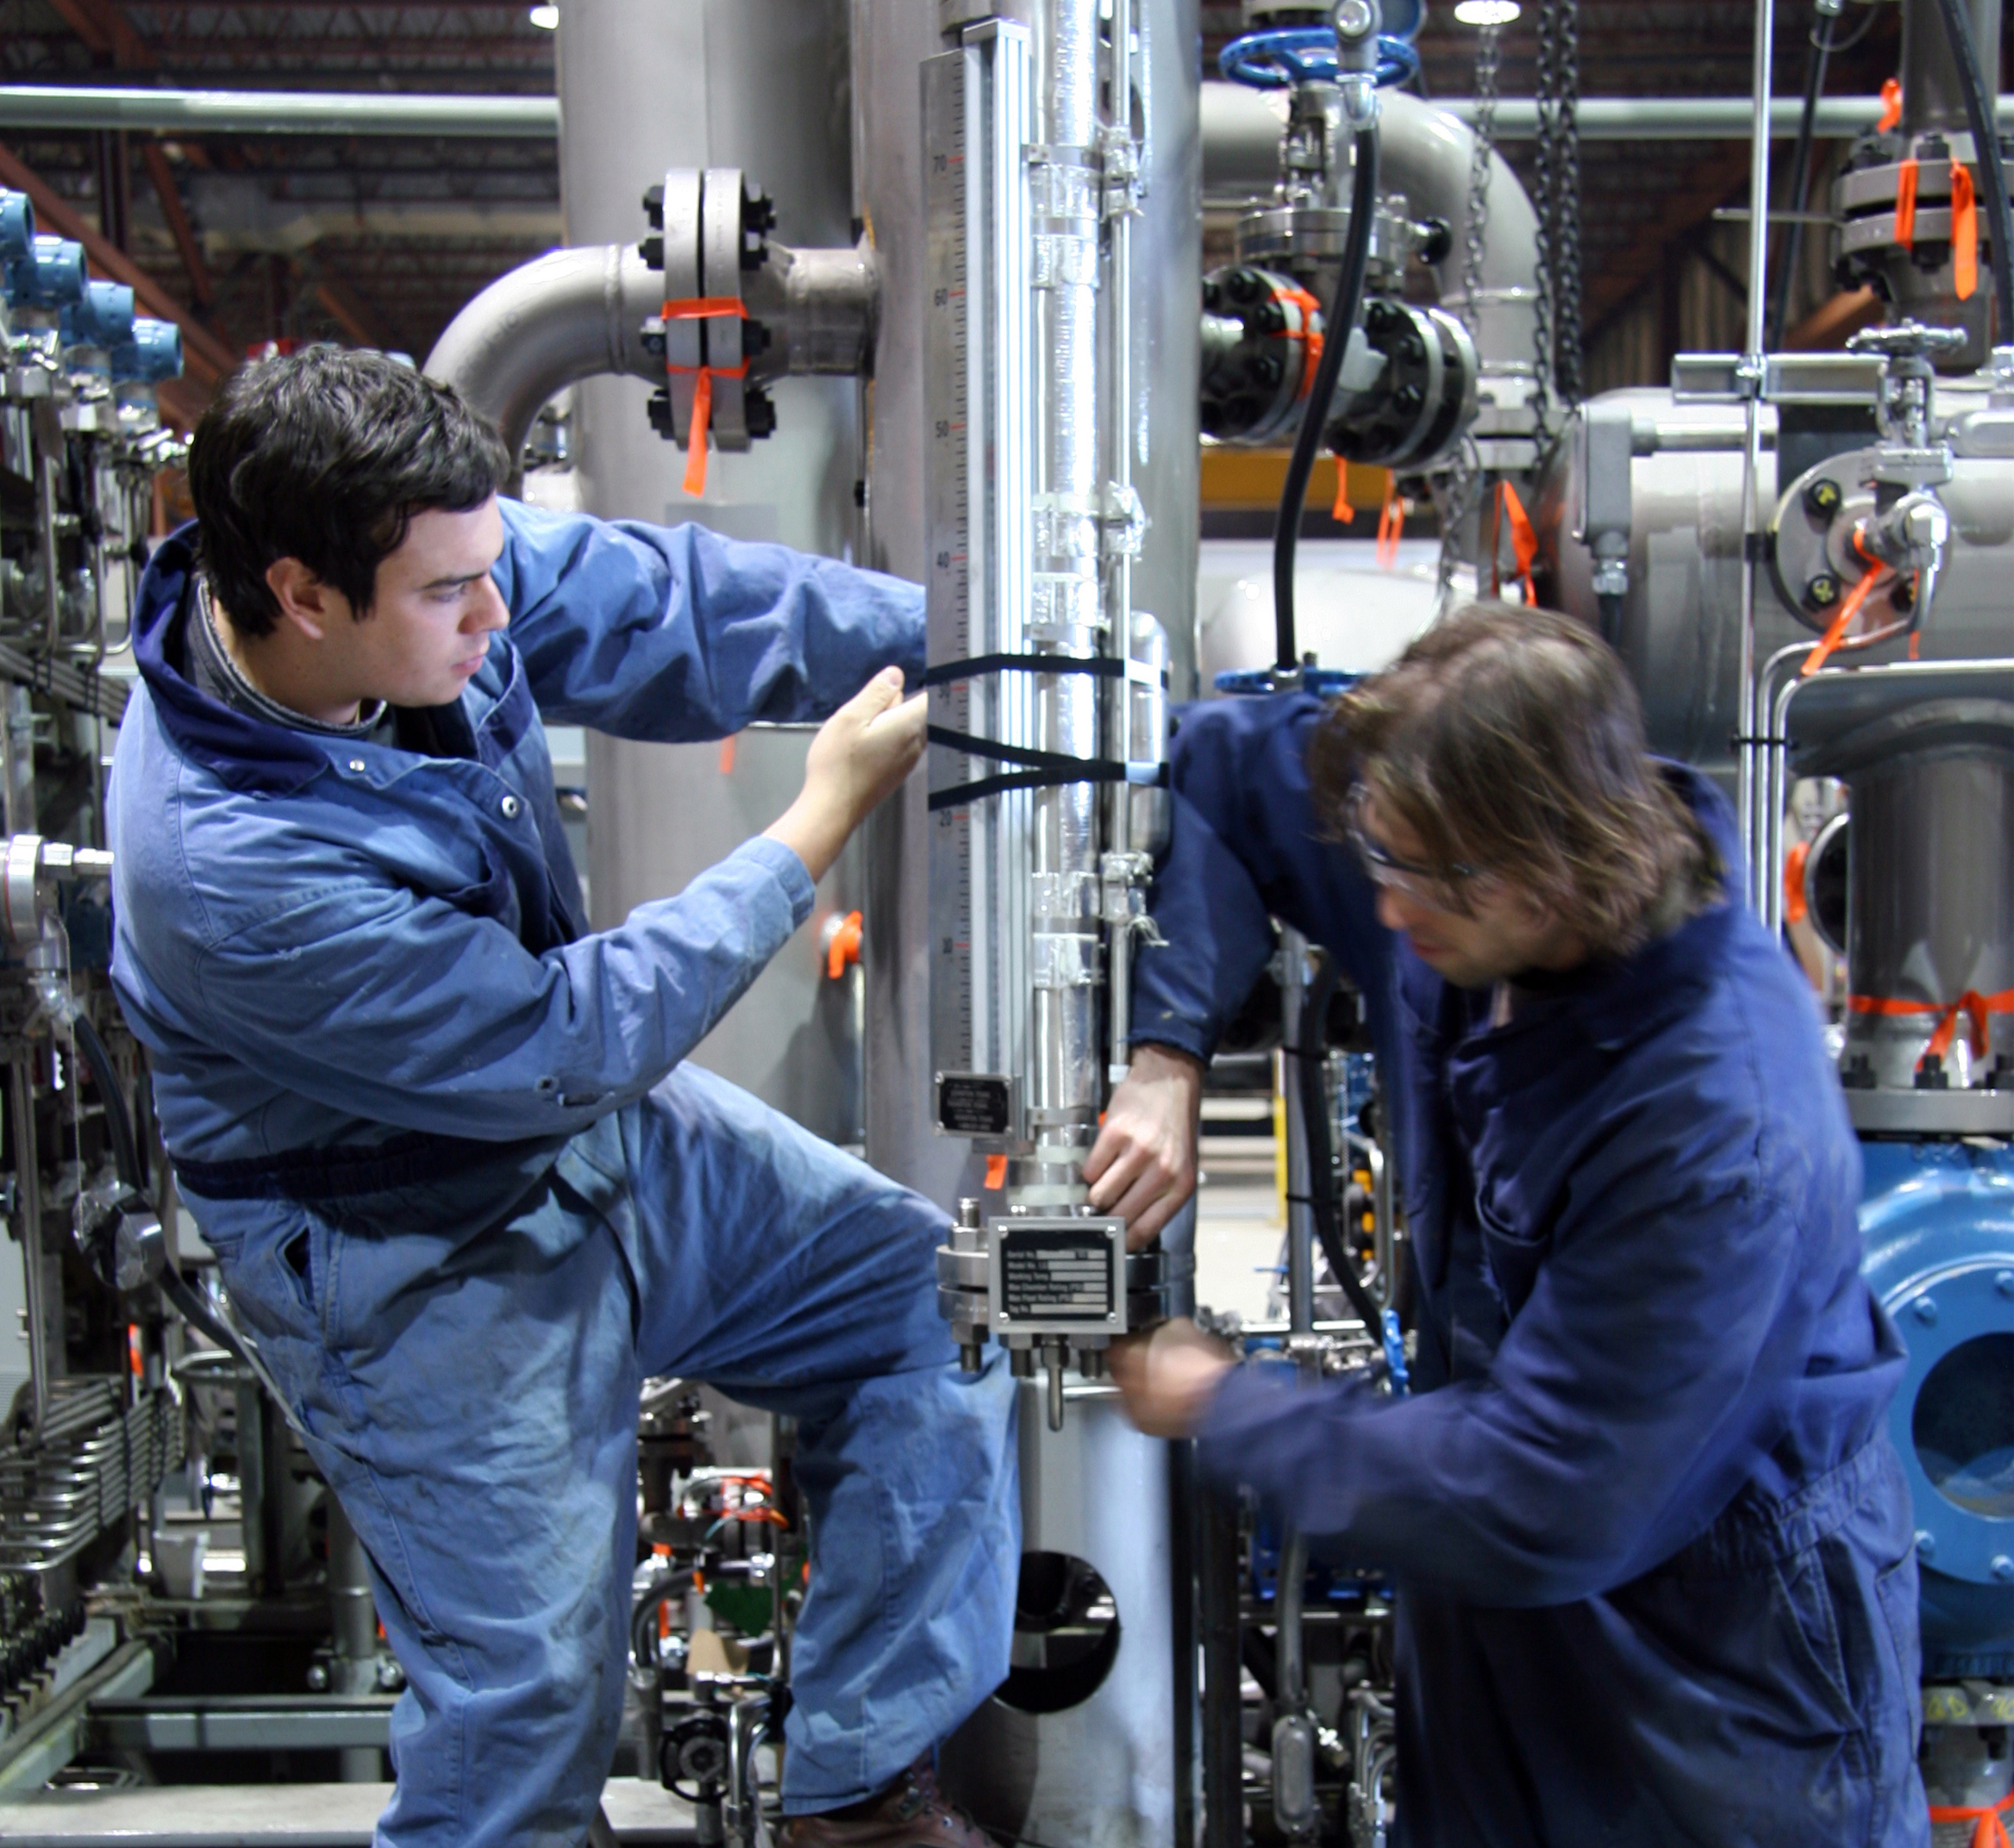 Industrial Piping System, Piping Design, Utility System Design, Piping Stress Analysis, Prince Engineering, Greenville South Carolina